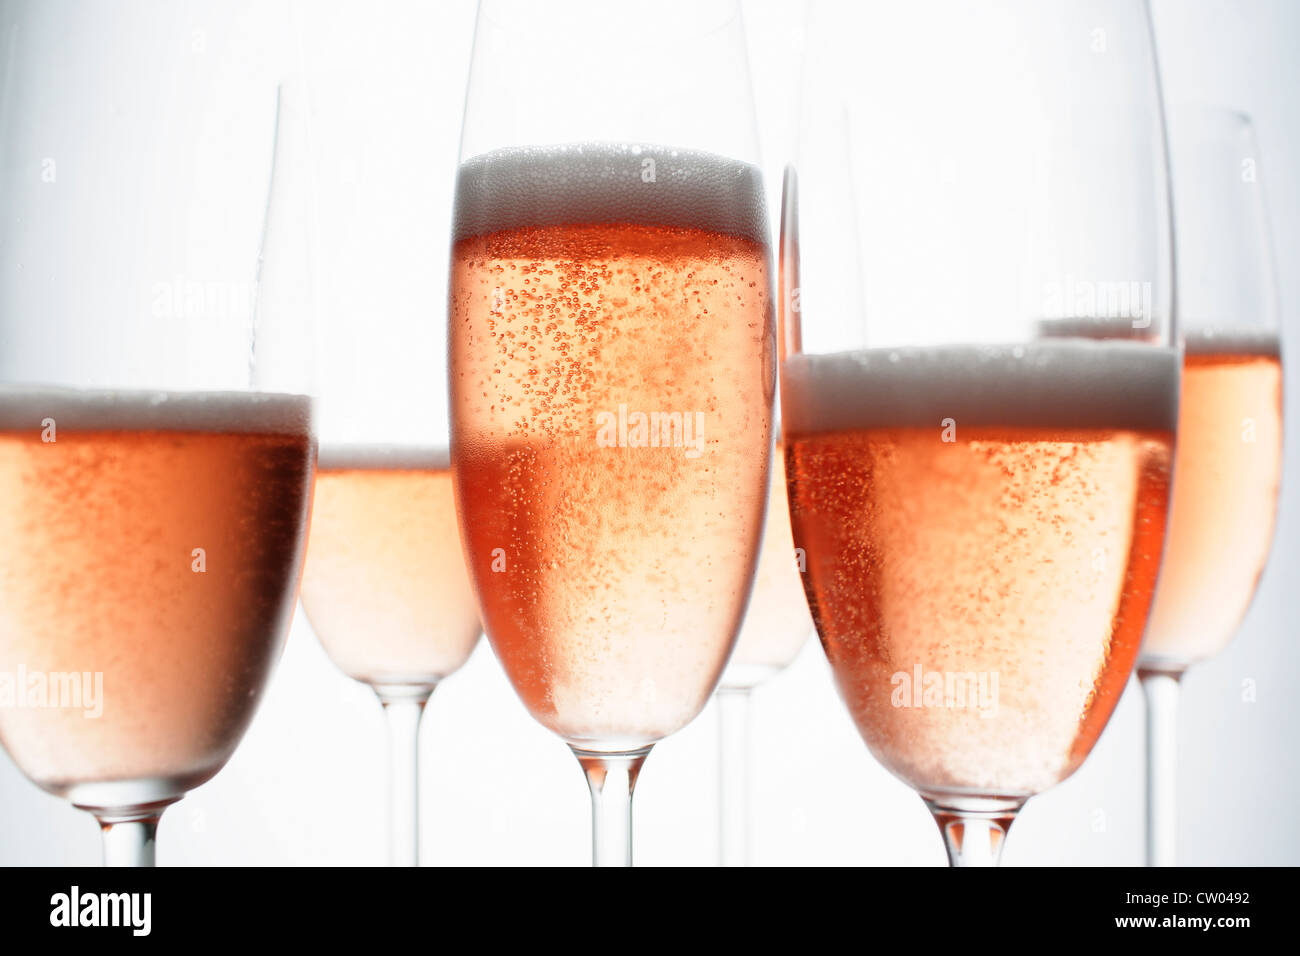 Close up of glasses of champagne - Stock Image